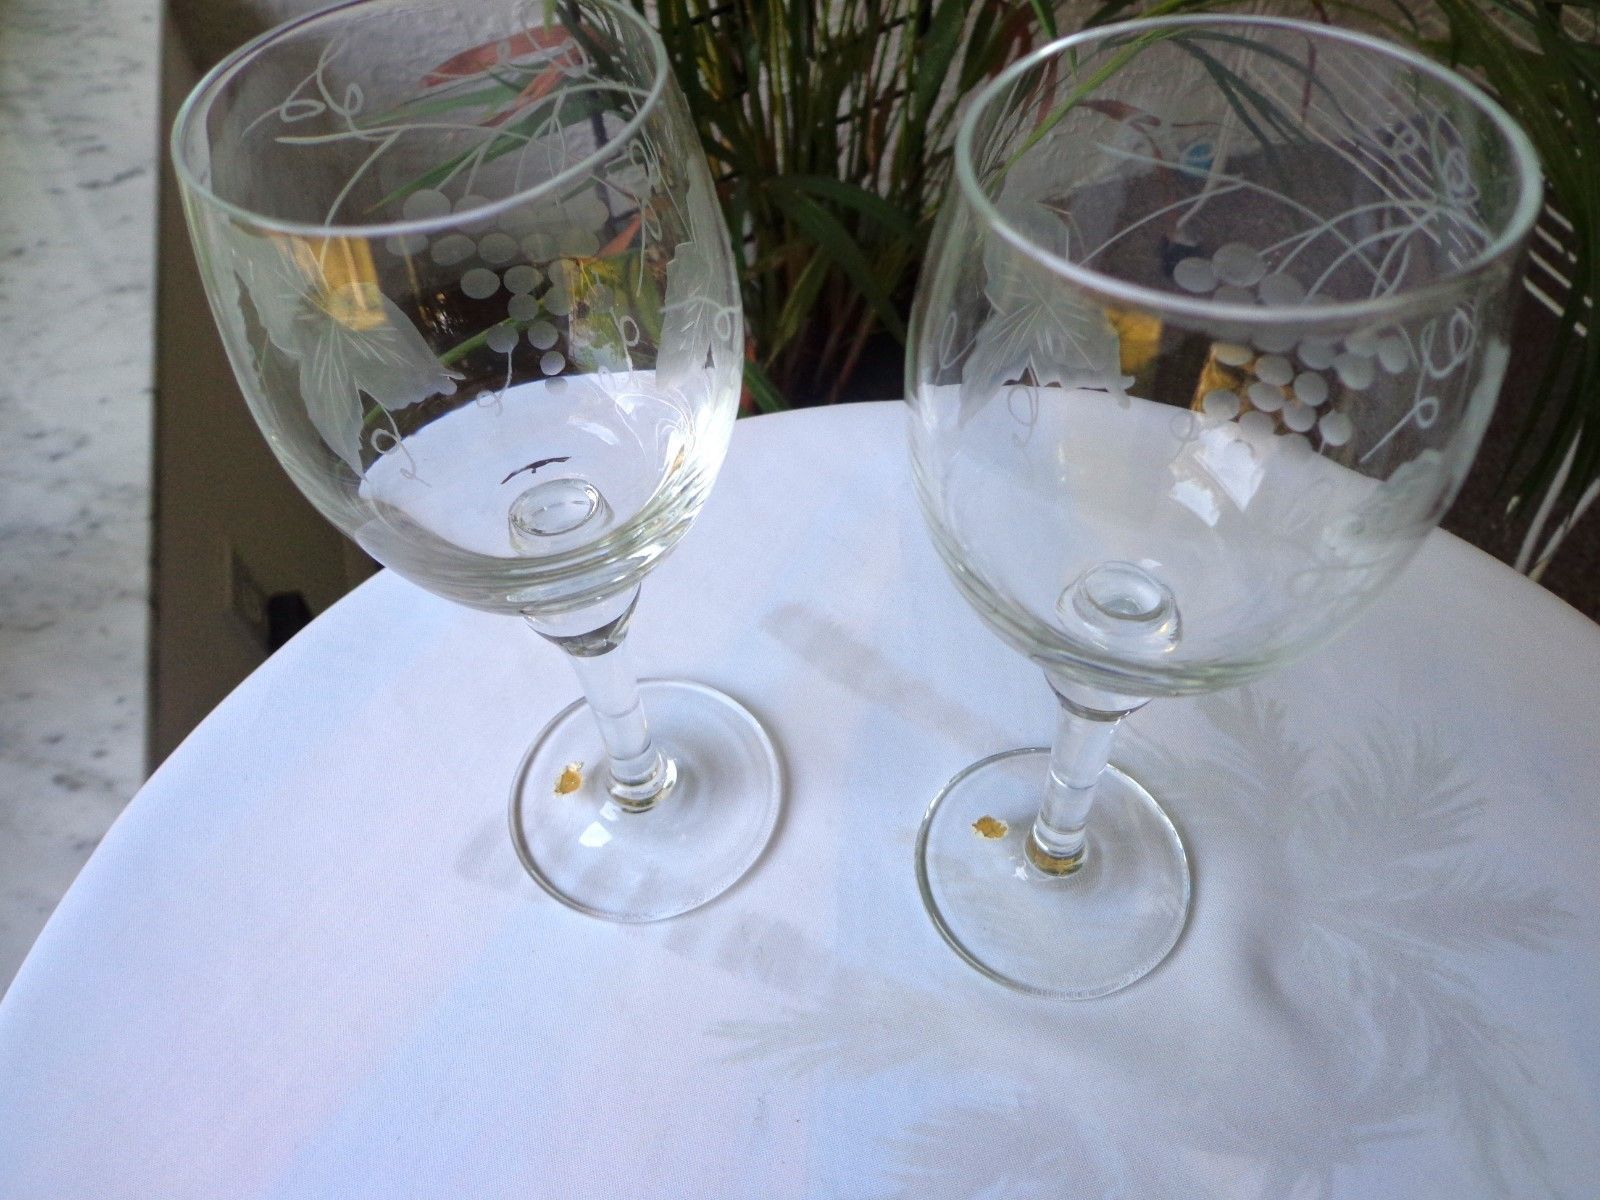 Set of 2 Clear Grey Etched Wine Glasses Unbranded